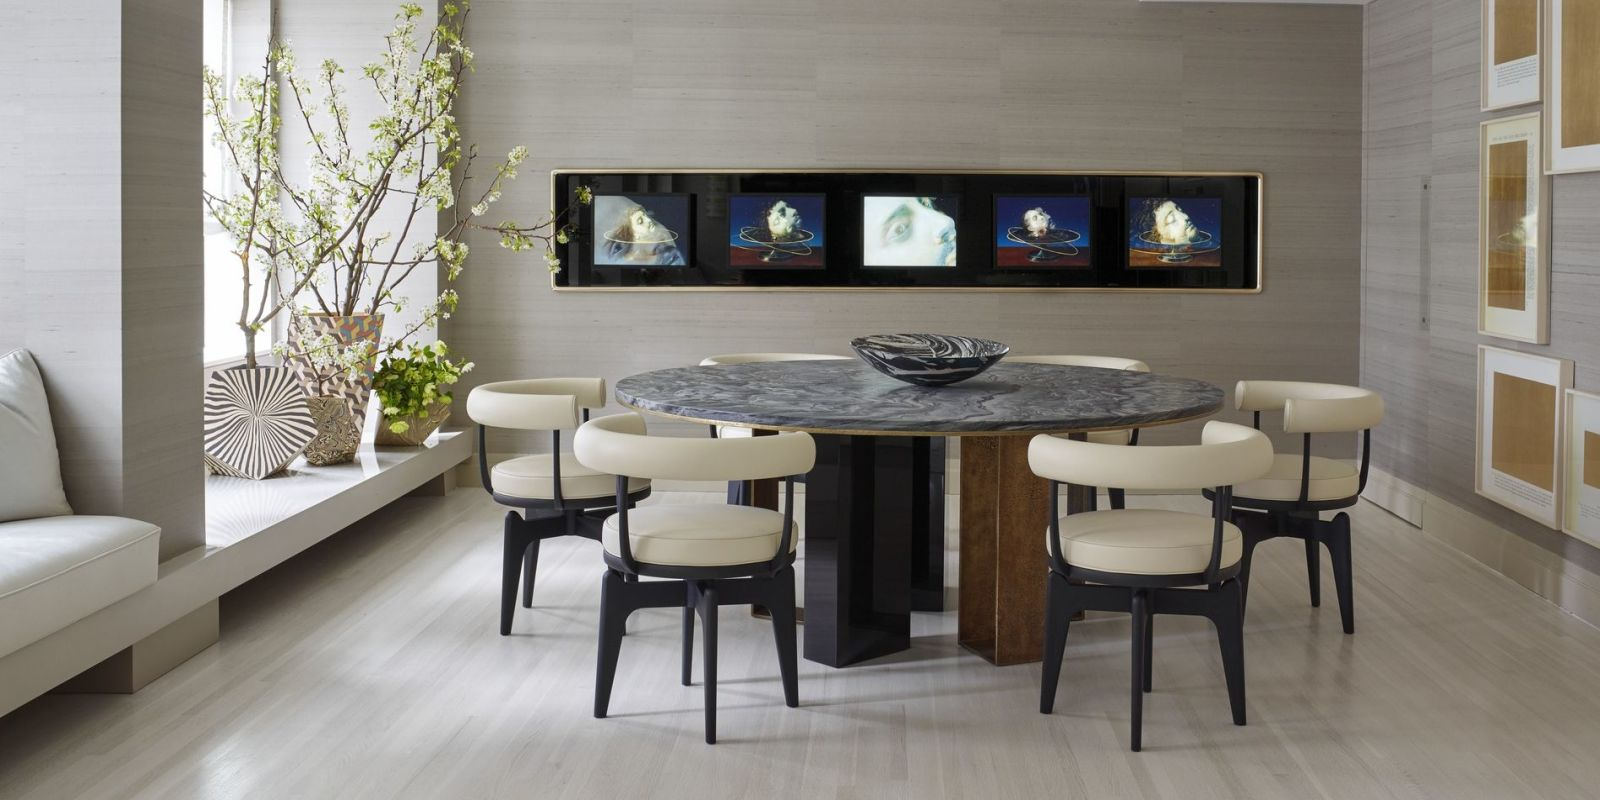 25 modern dining room decorating ideas contemporary for Dining room designs ideas